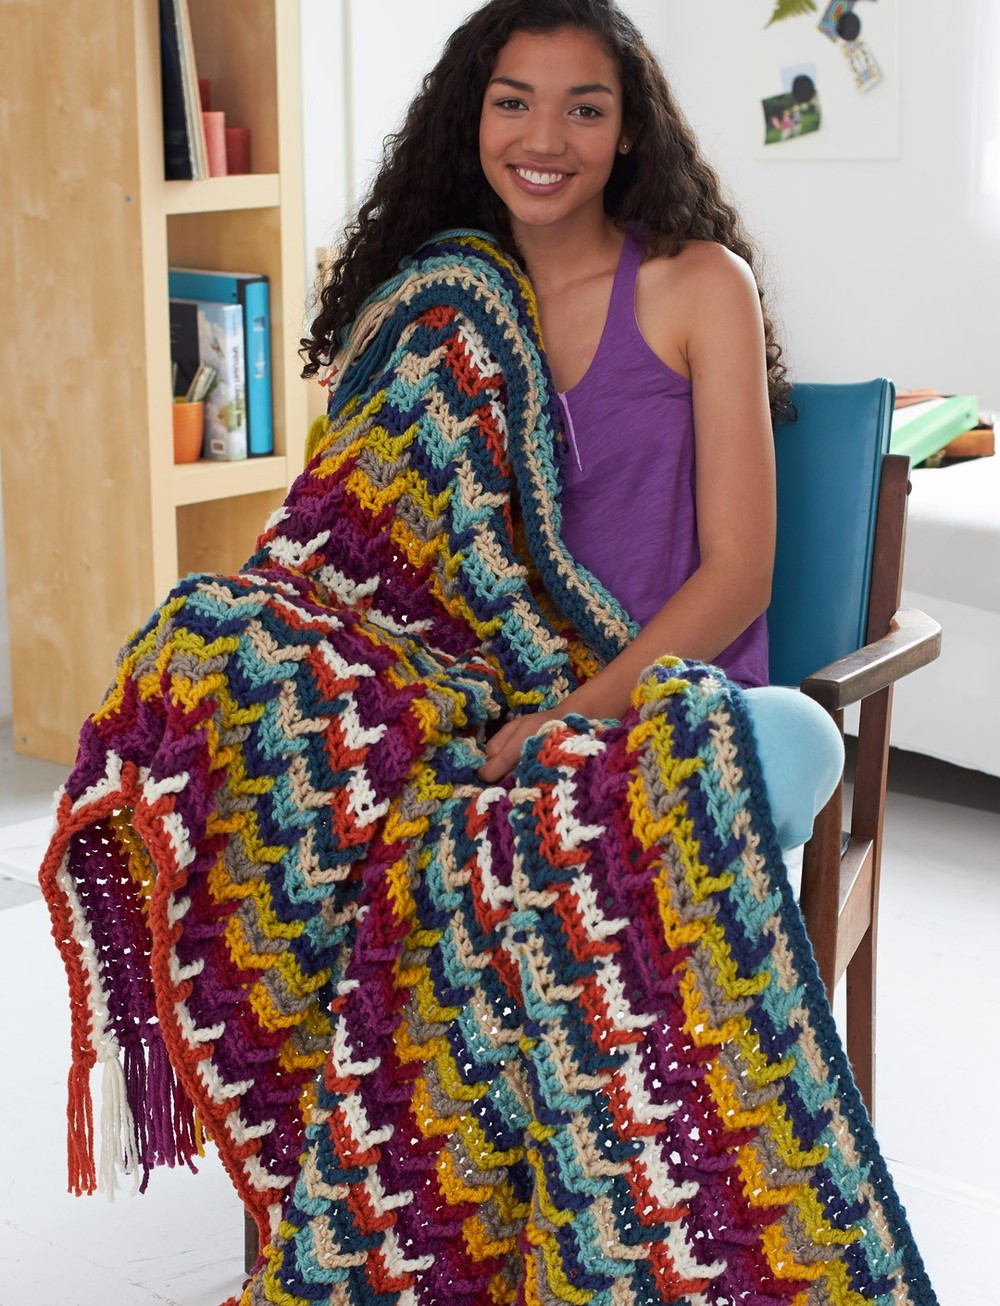 New Hooked On Color Afghan Hooked On Crochet Of Wonderful 44 Models Hooked On Crochet